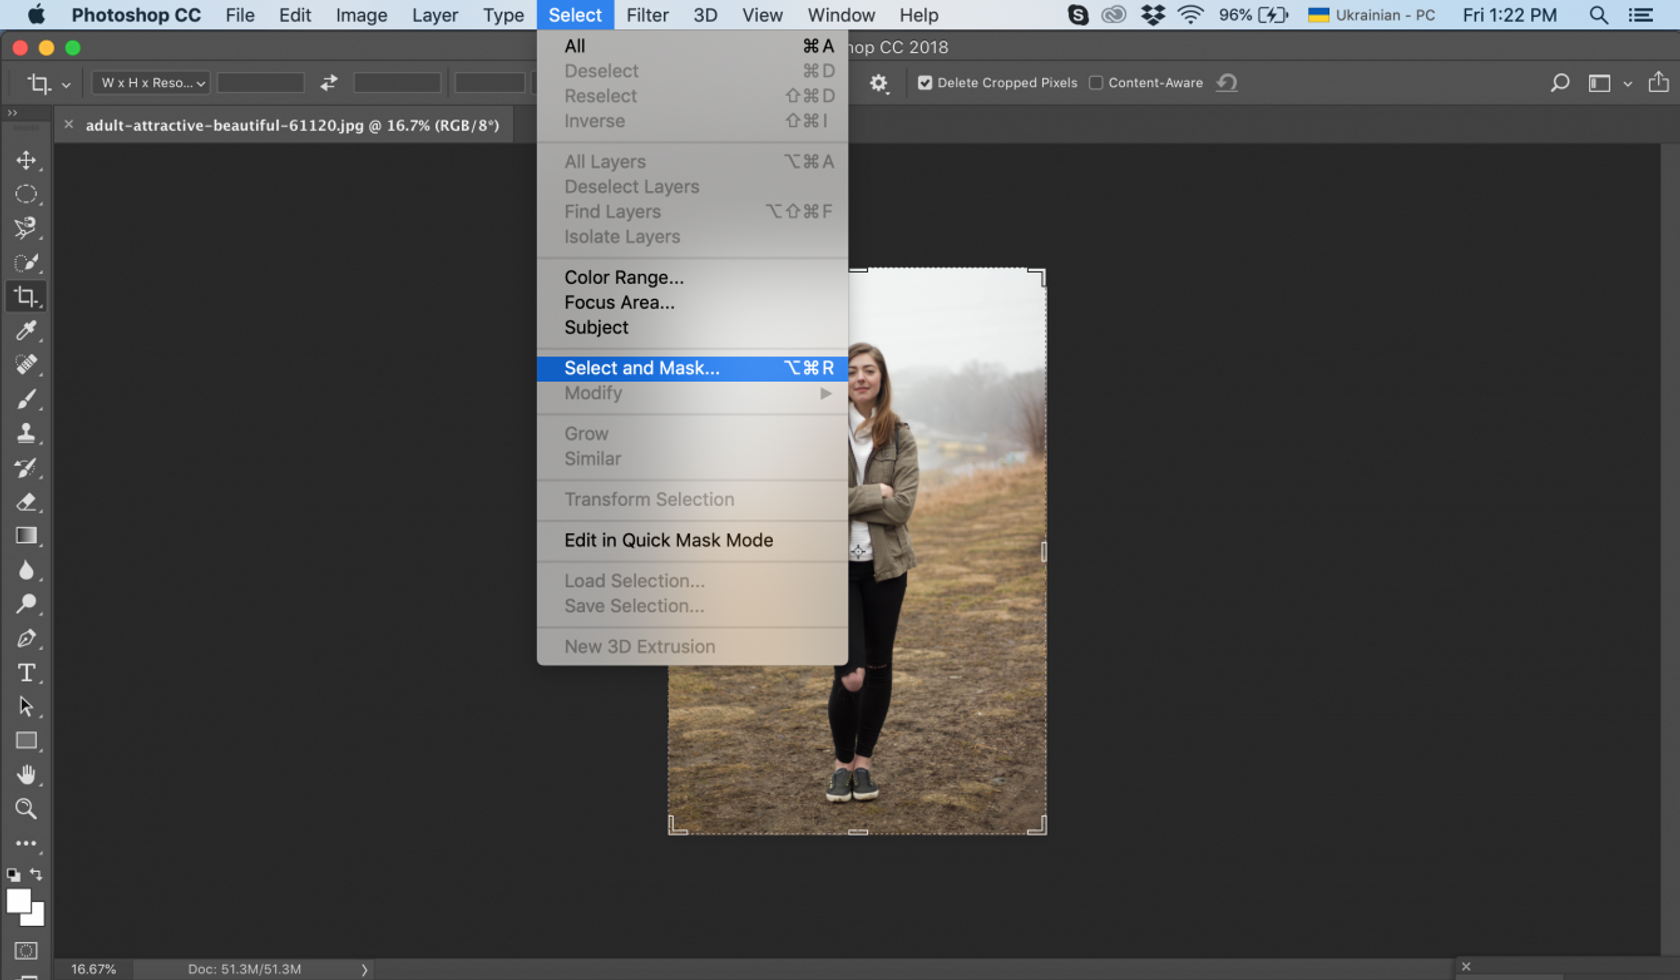 How to Smooth Edges in Photoshop: Photoshop Feather and Other Tools Image3